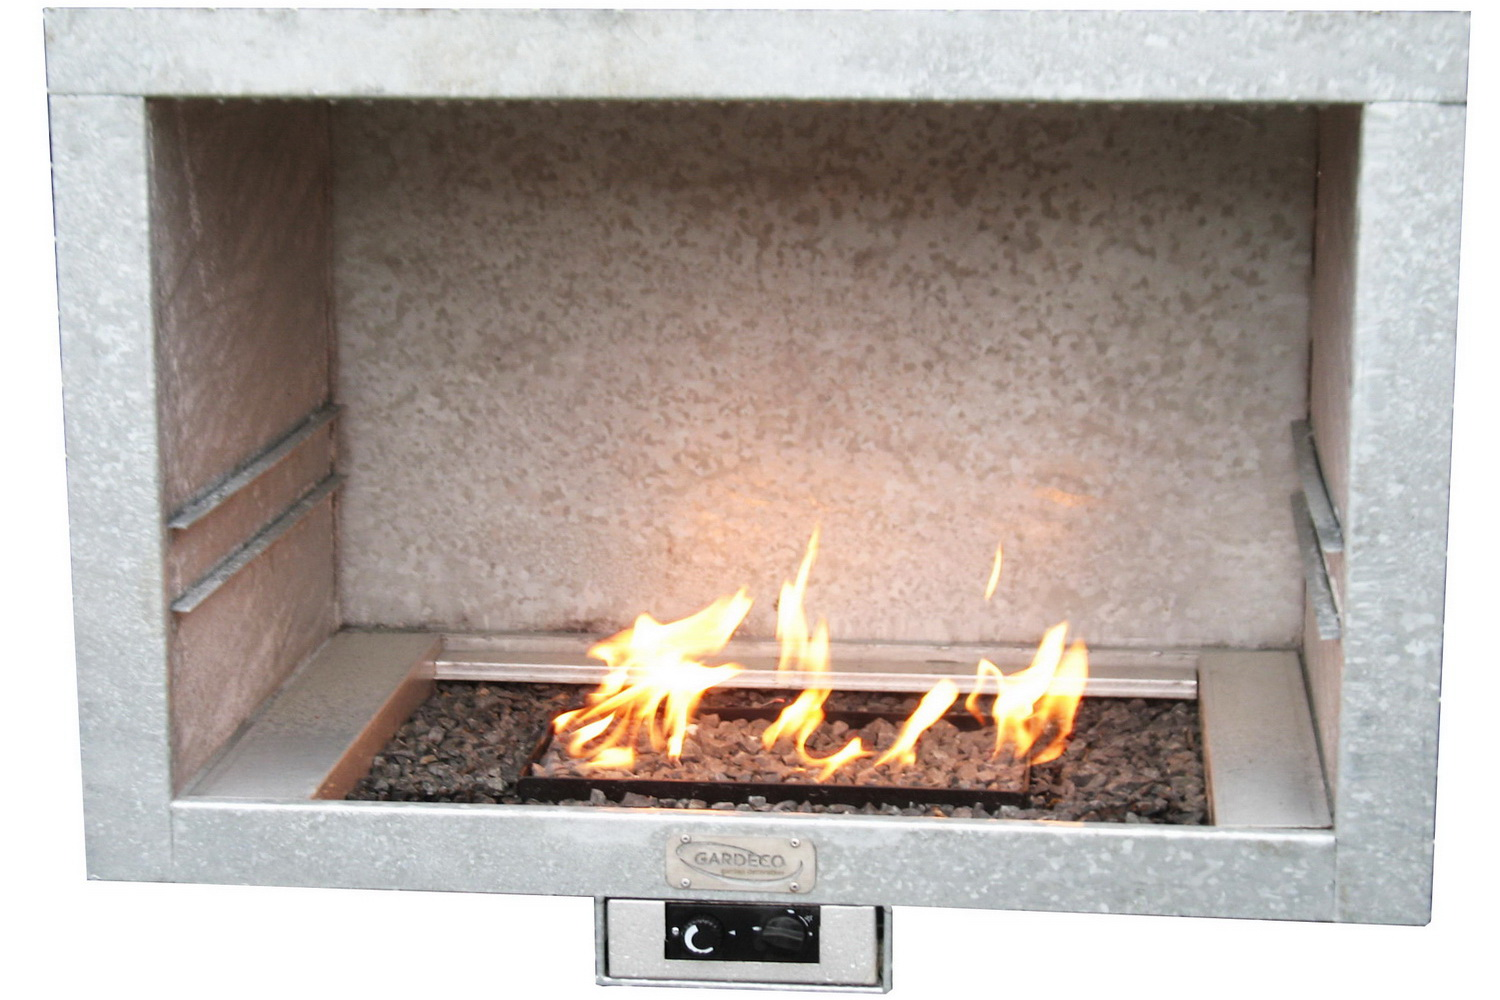 Build in gasfireplace